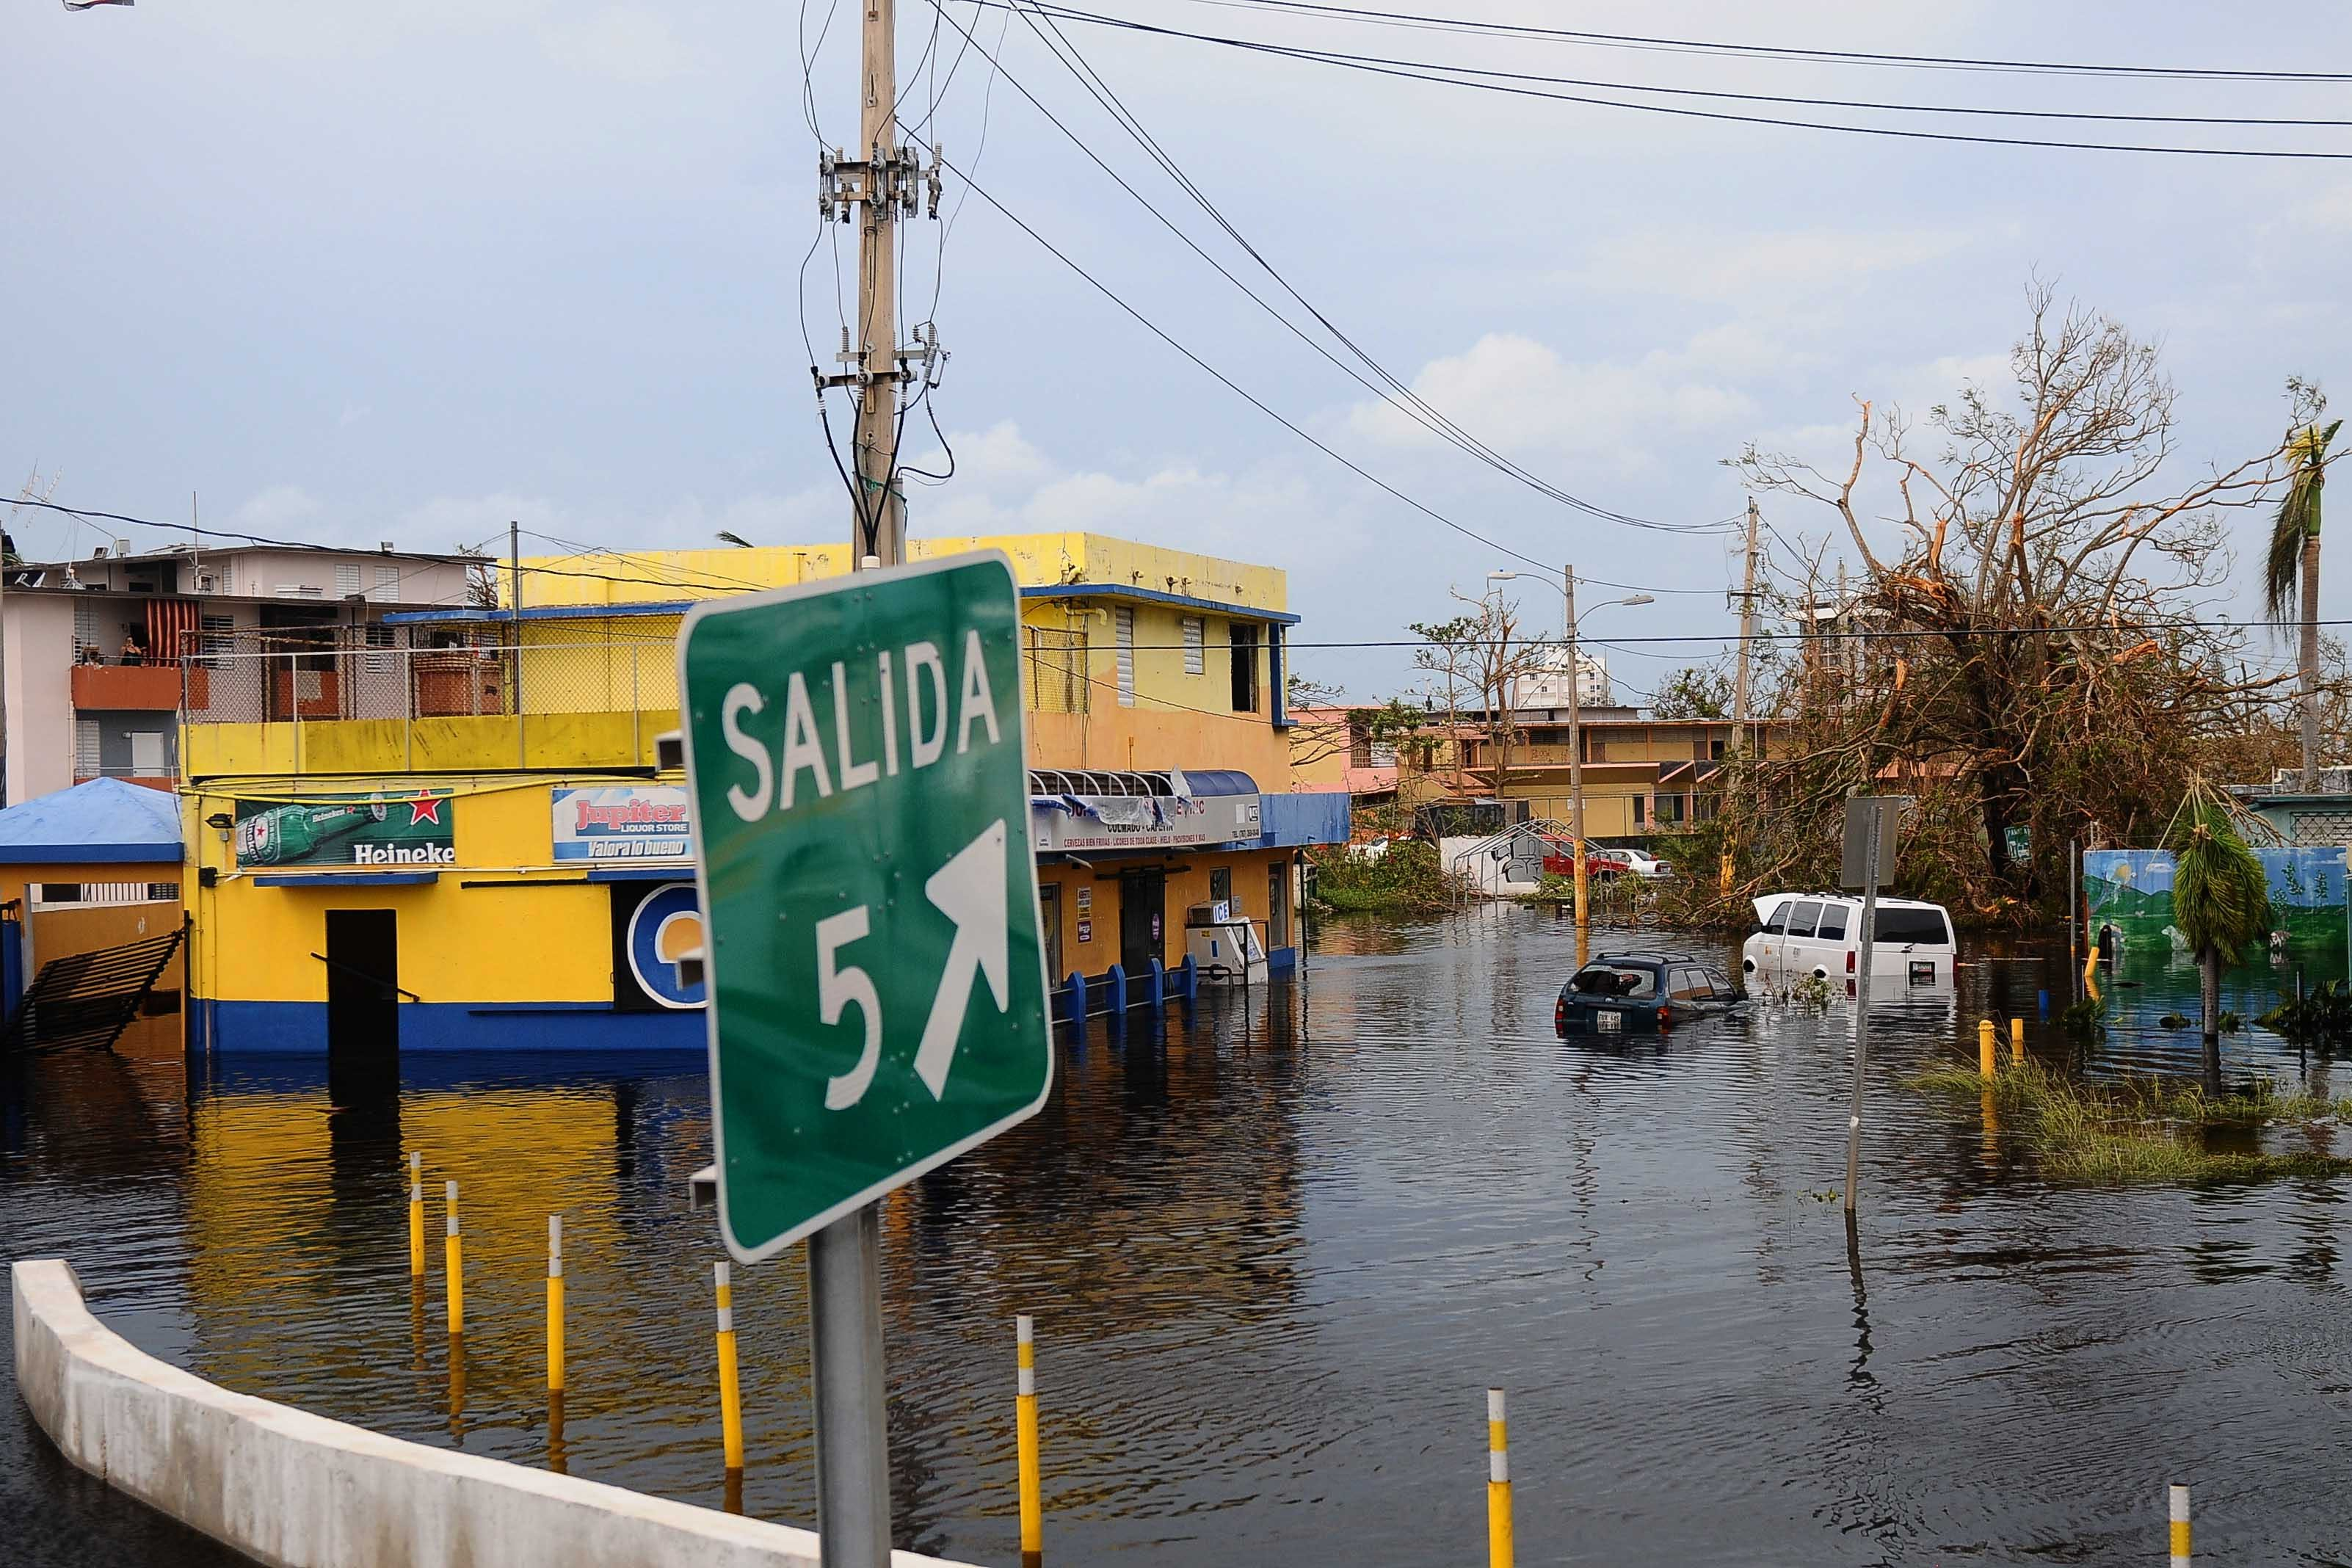 Flooded streets in a town in PR in the aftermath of Hurricane Maria